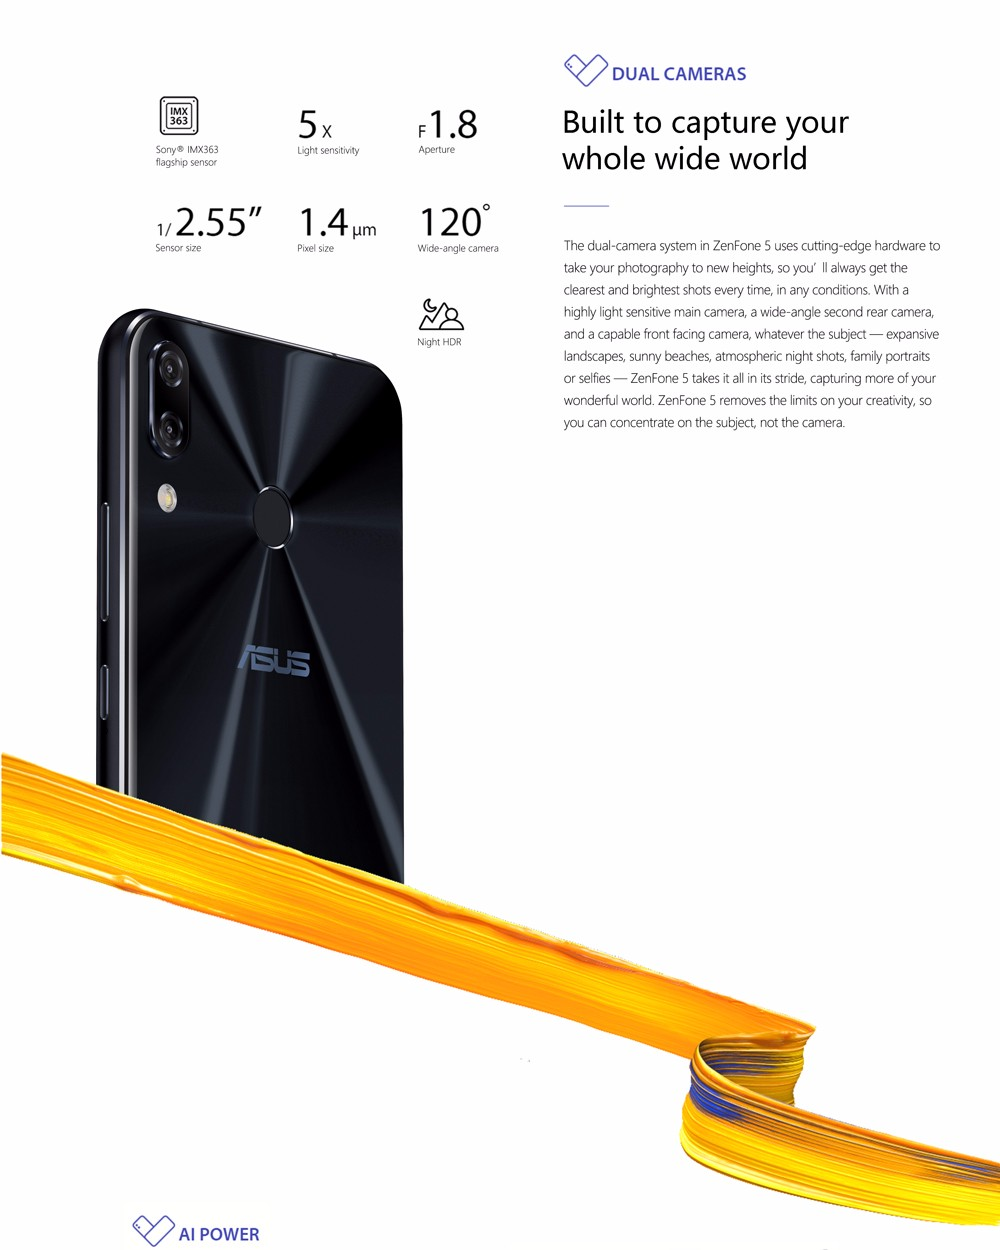 Asus zenfone 5 ze620kl 4g phablet global version 36999 free 4gb ram 64gb rom fingerprint scanner type c bluetooth 50 black fandeluxe Image collections